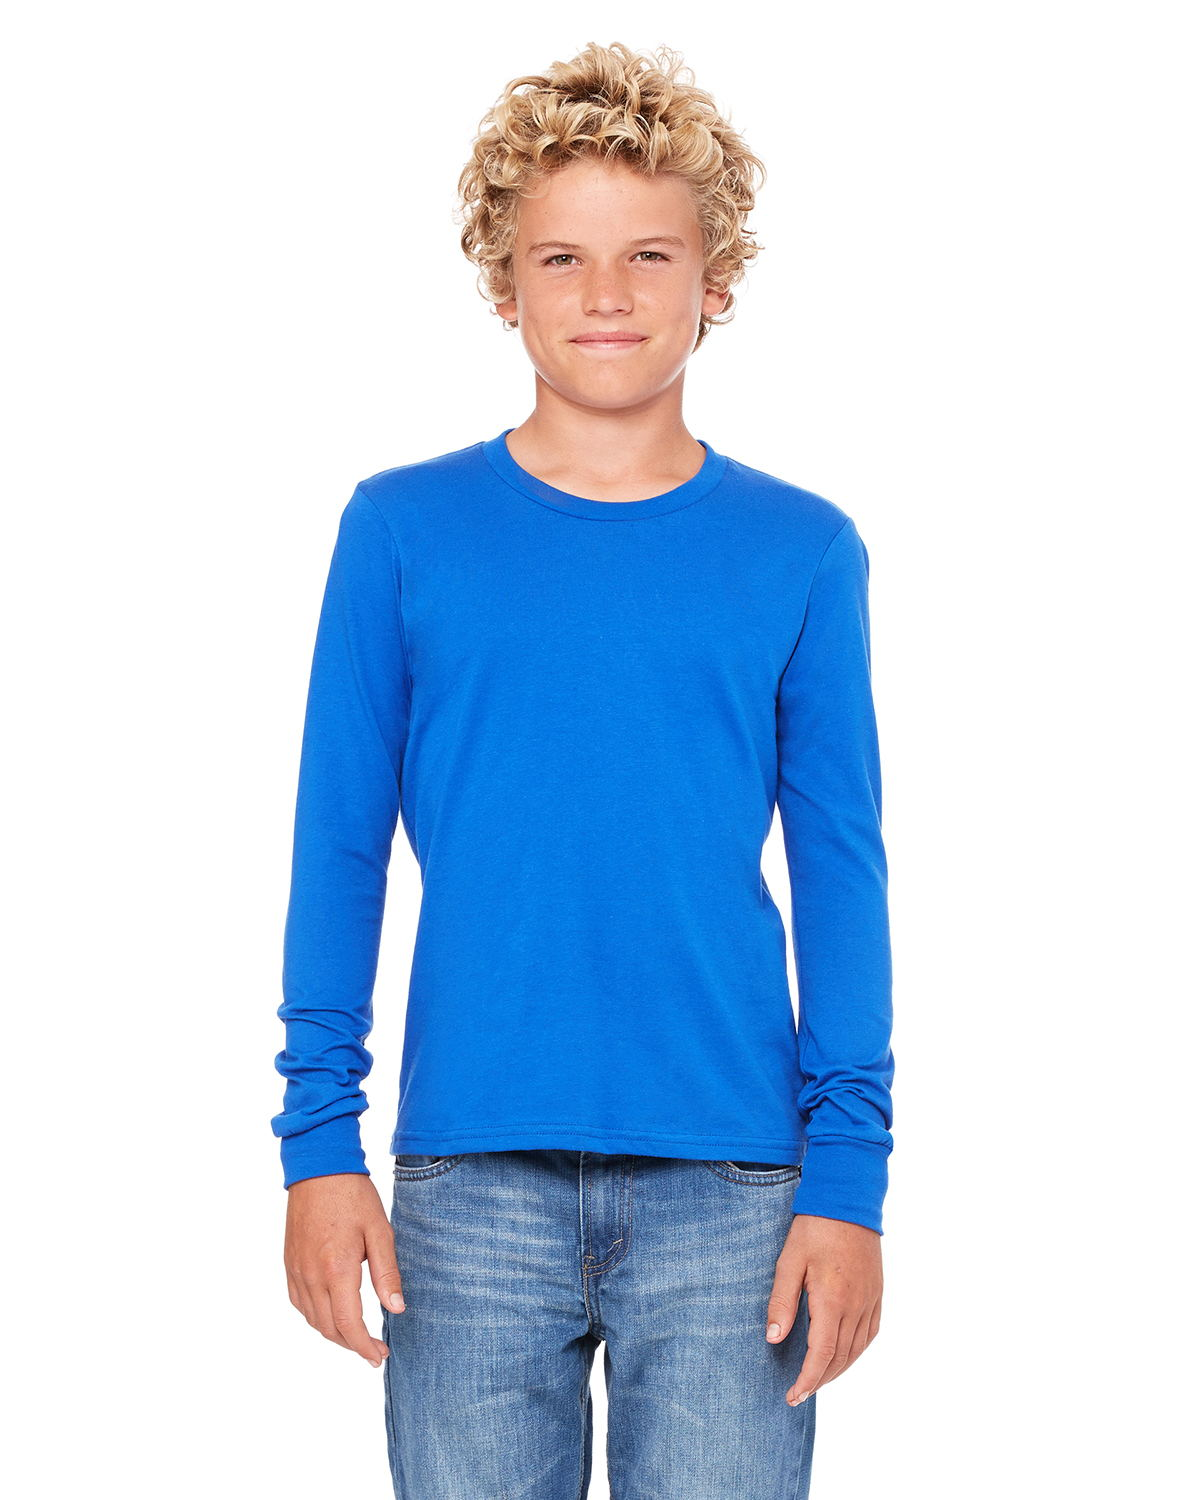 Bella+Canvas 3501Y - Youth Jersey Long-Sleeve T-Shirt